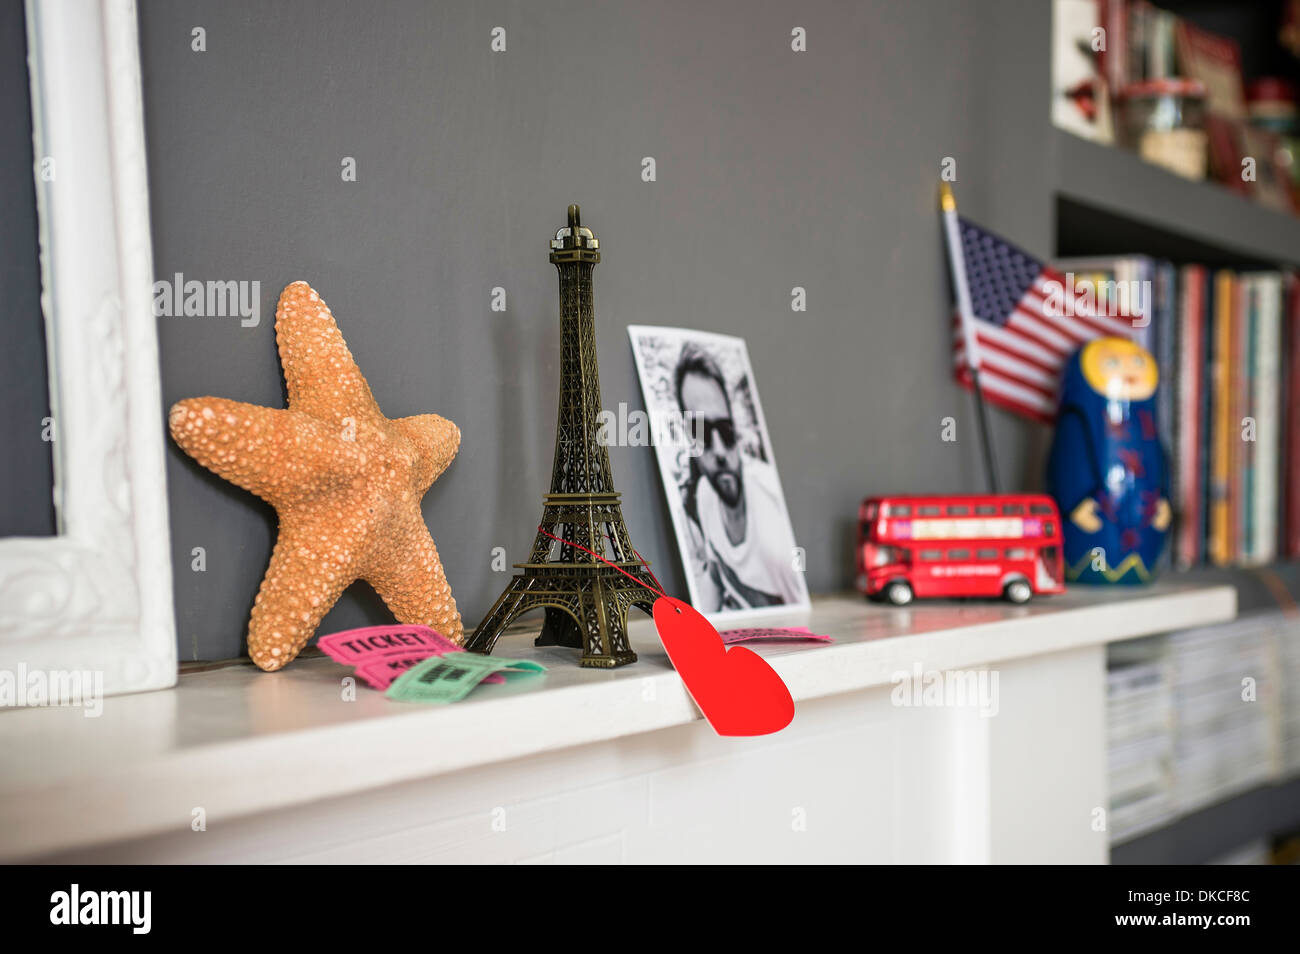 Living room mantelpiece with travel souvenirs - Stock Image